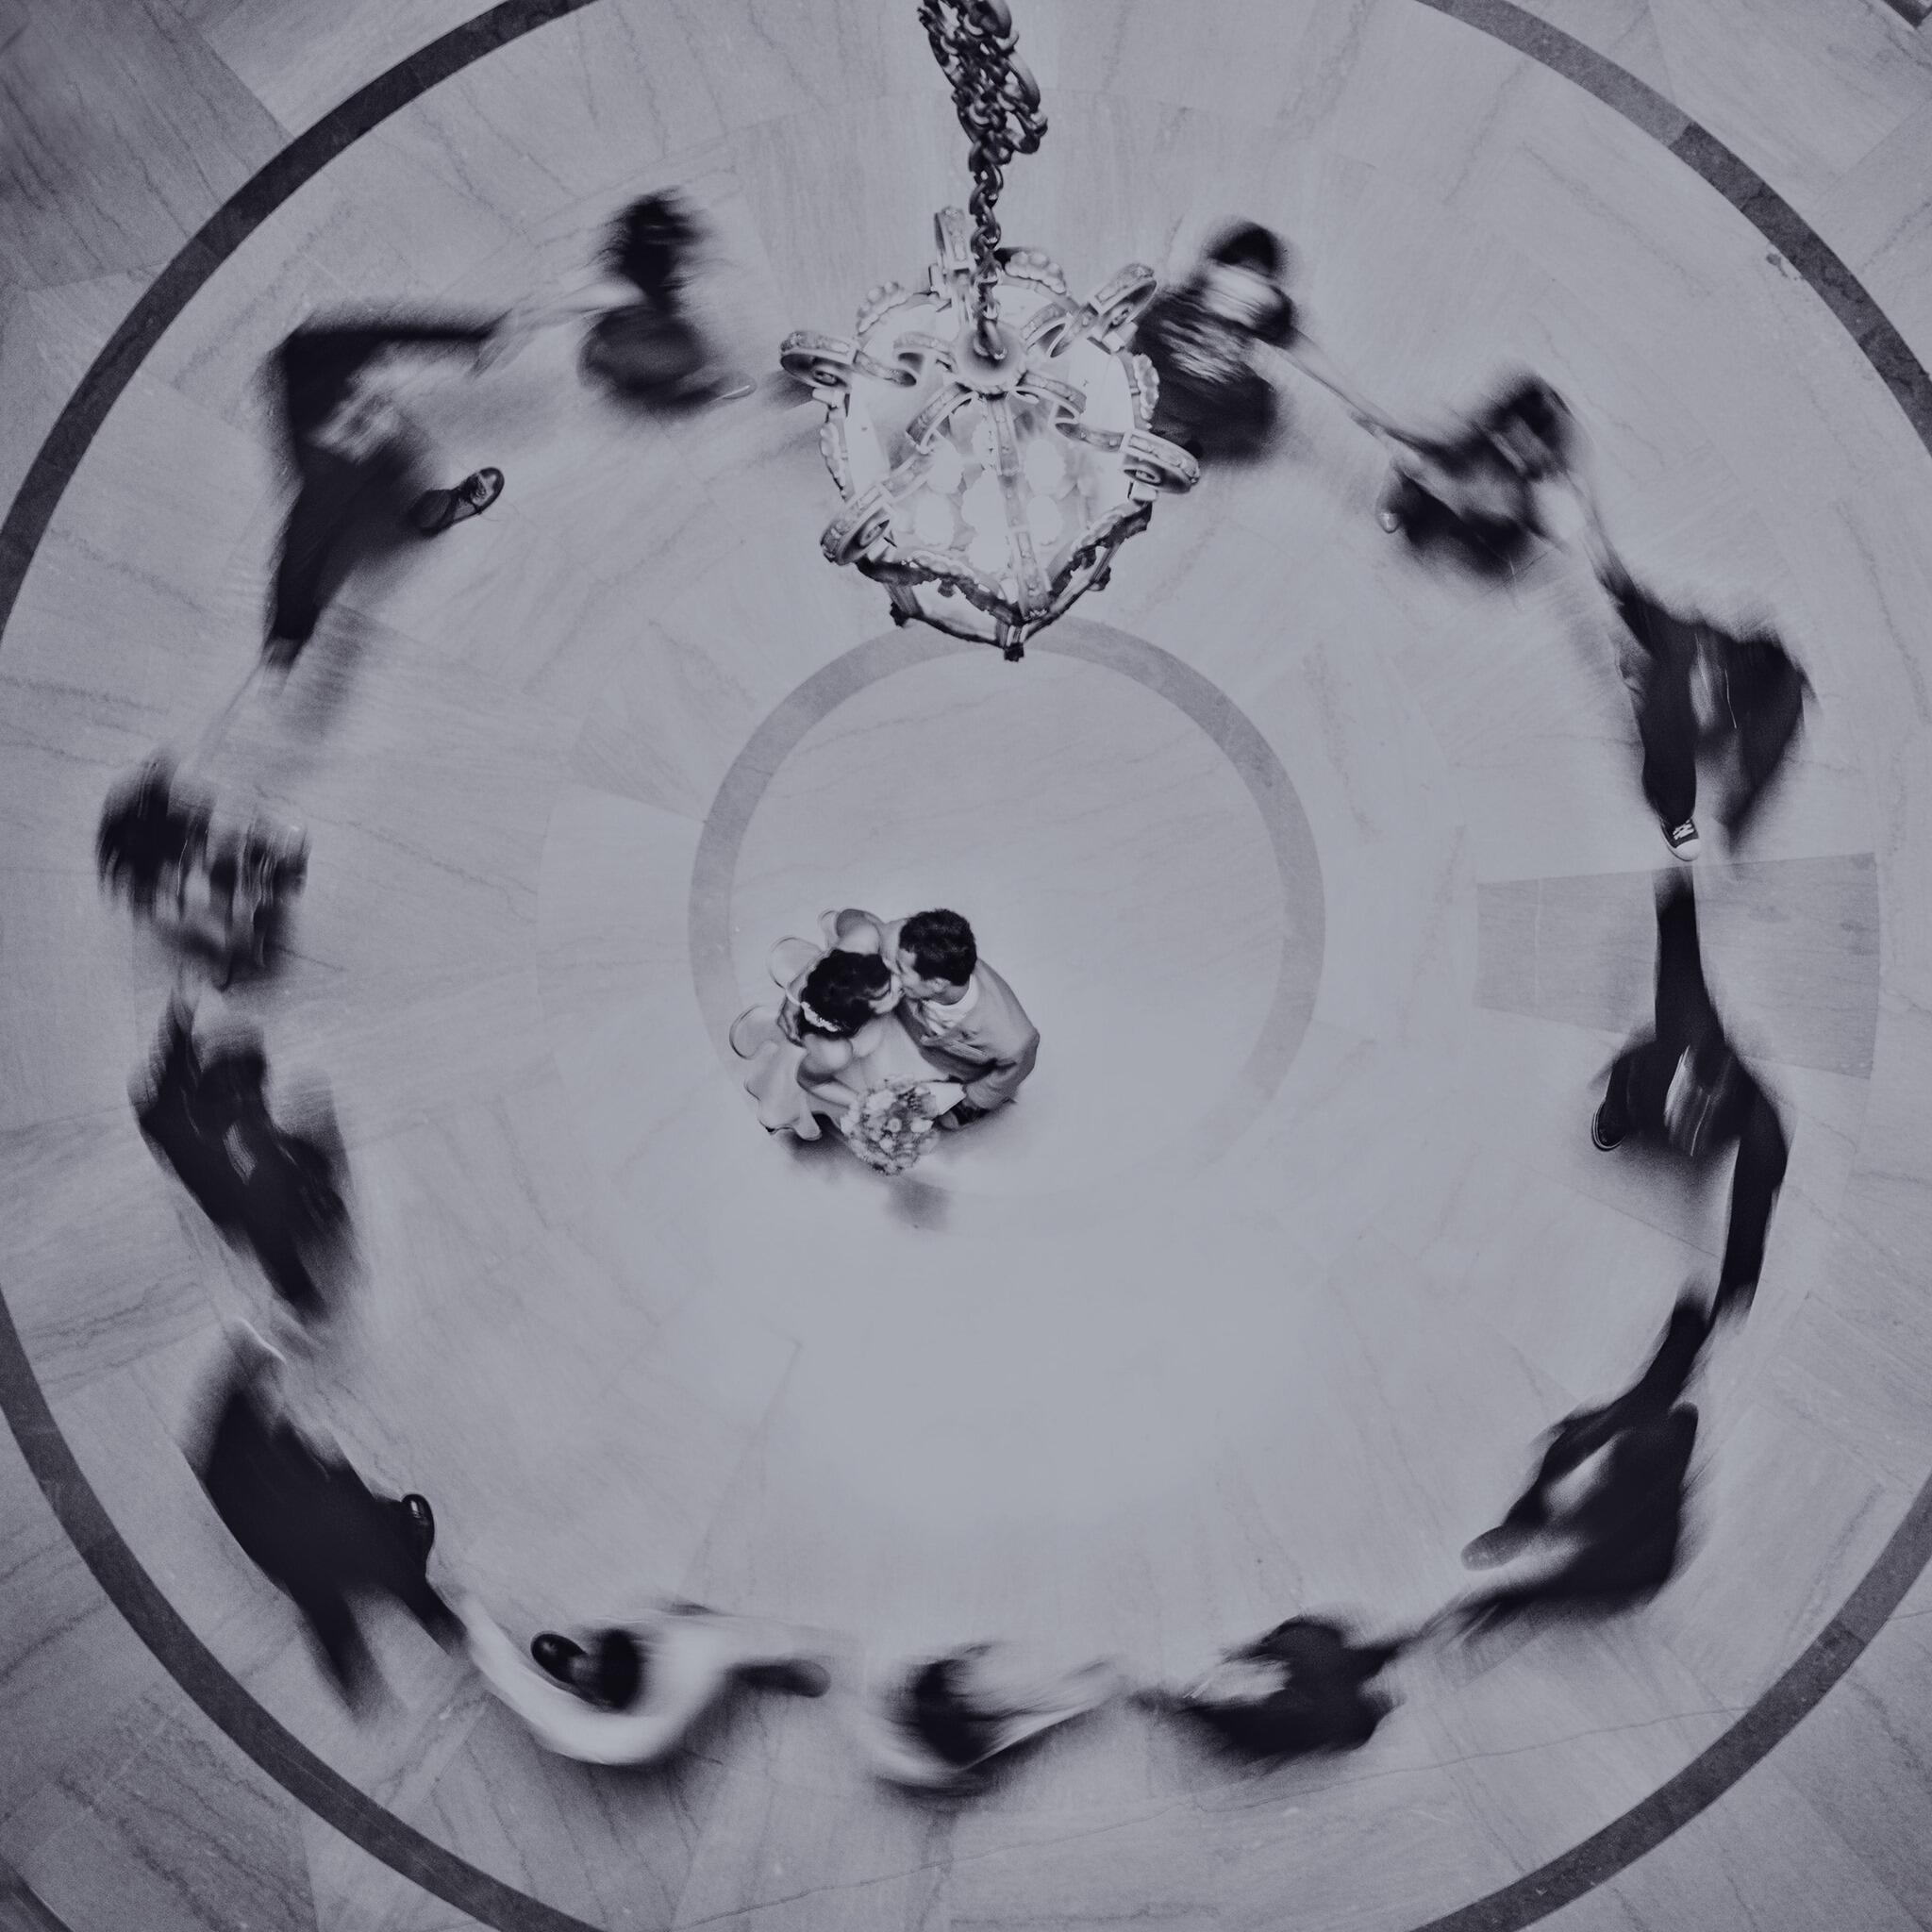 photo of couple dancing on dance floor from above